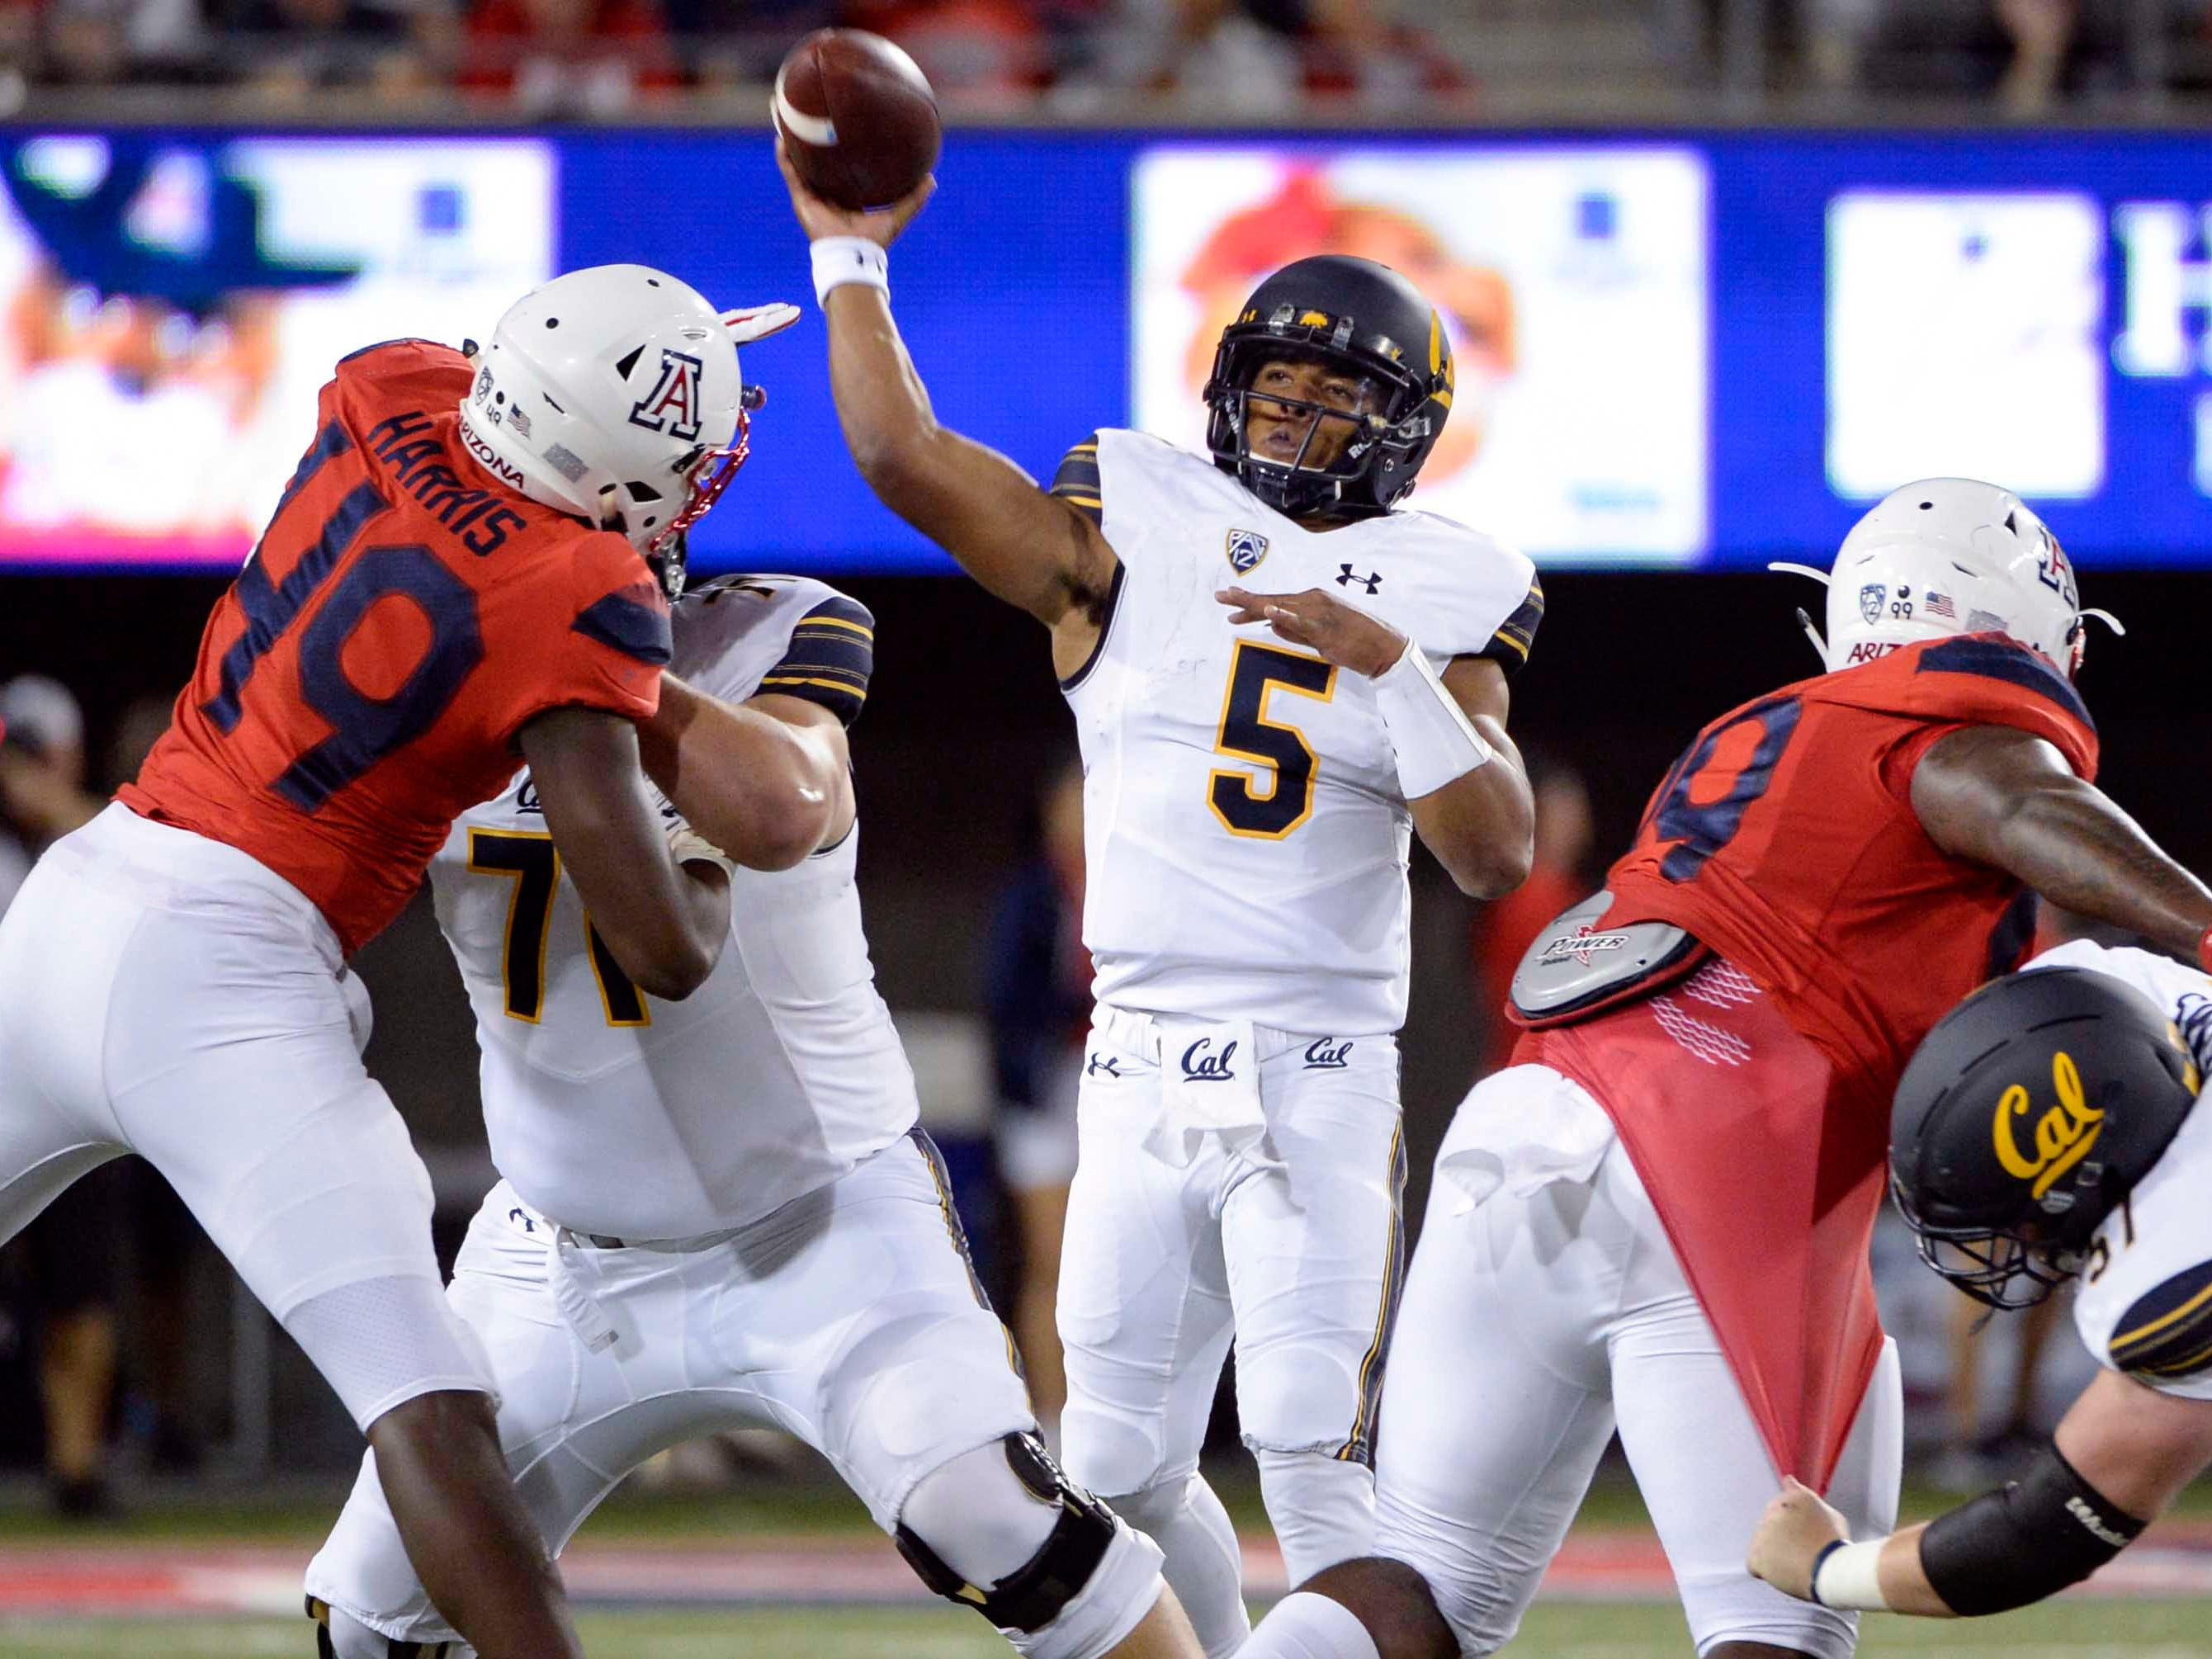 Oct 6, 2018; Tucson, AZ, USA; California Golden Bears quarterback Brandon McIlwain (5) passes the ball as Arizona Wildcats defensive end Jalen Harris (49) defends during the first half at Arizona Stadium. Mandatory Credit: Casey Sapio-USA TODAY Sports